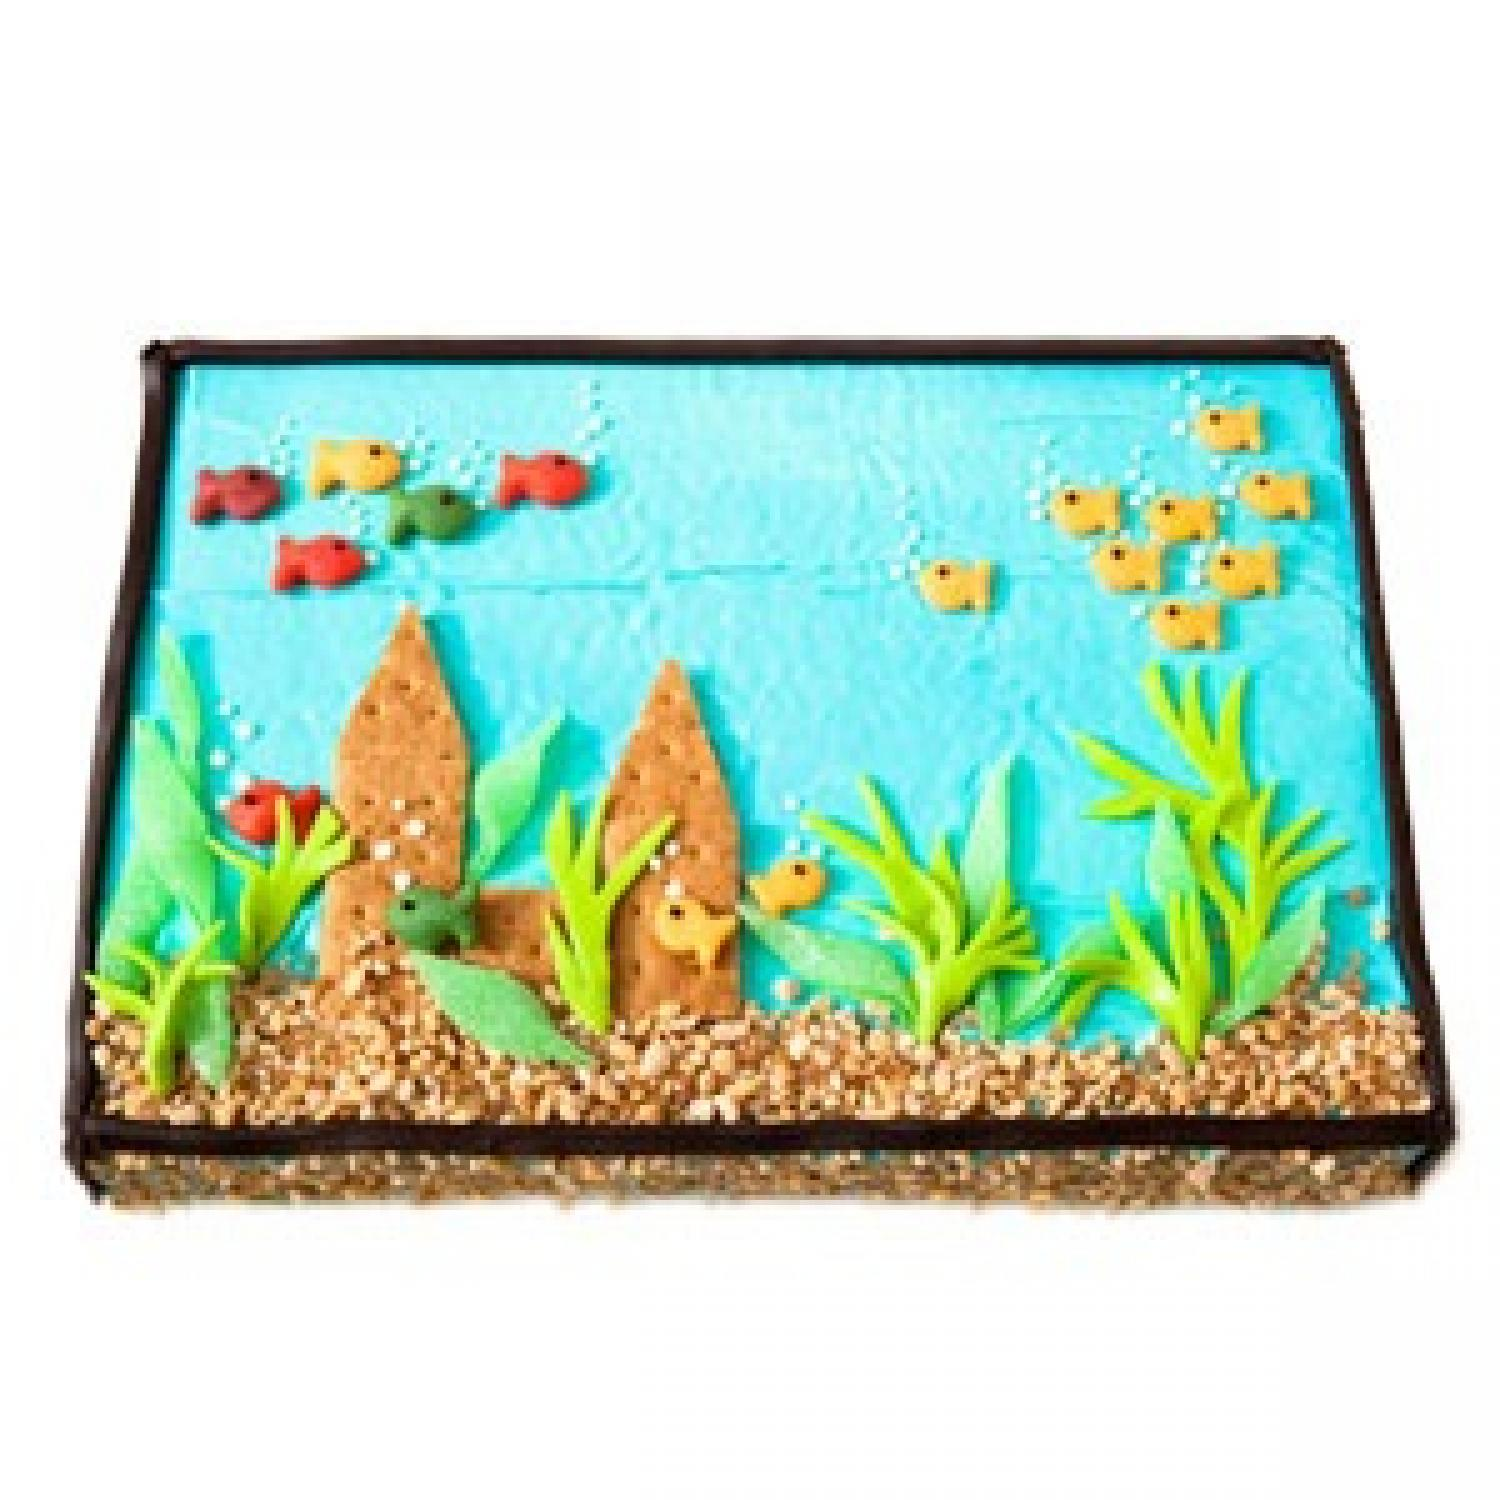 fish tank birthday cake design parenting